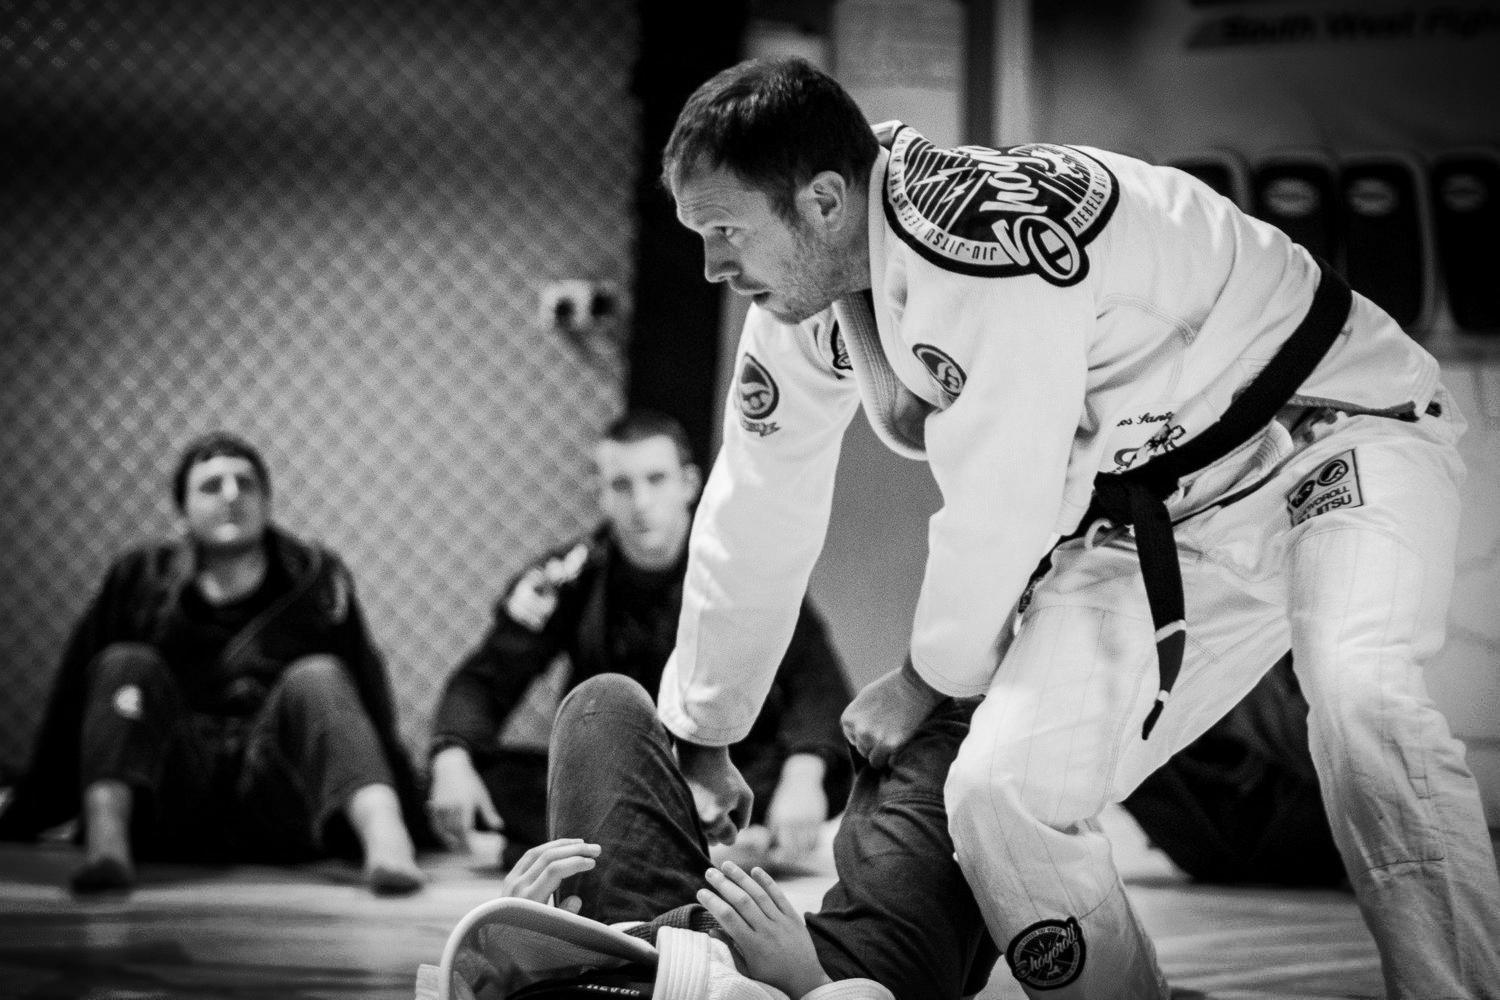 Black Belt instructor Paul Carthy demonstrating a Guard Pass technique to the class